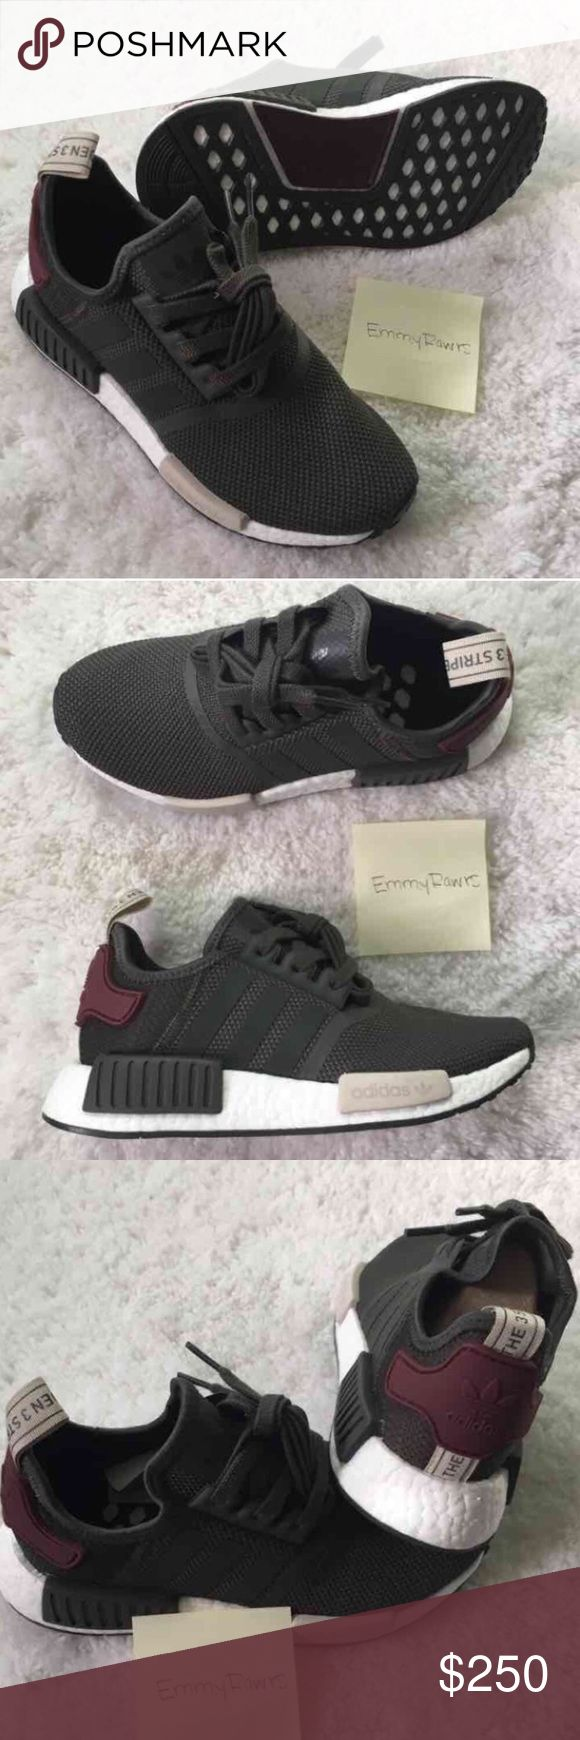 LAST • New Adidas NMD R1 Utility Grey SIZE 6.5 NO TRADES•••• runs half a size bigger unless you have wide feet!! ••• New Women Adidas NMD. Featherweight sneakers with the adidas boost cushioning. Upper is made of suede and neoprene which makes these. Also have EVA foam plugs which provides more comfort for the underfoot. Have the classic 3 stripes.  Colorway : Utility Grey.   #adidas #NMD #boost #women #yeezy White talc cream salmon pink Adidas Shoes Sneakers